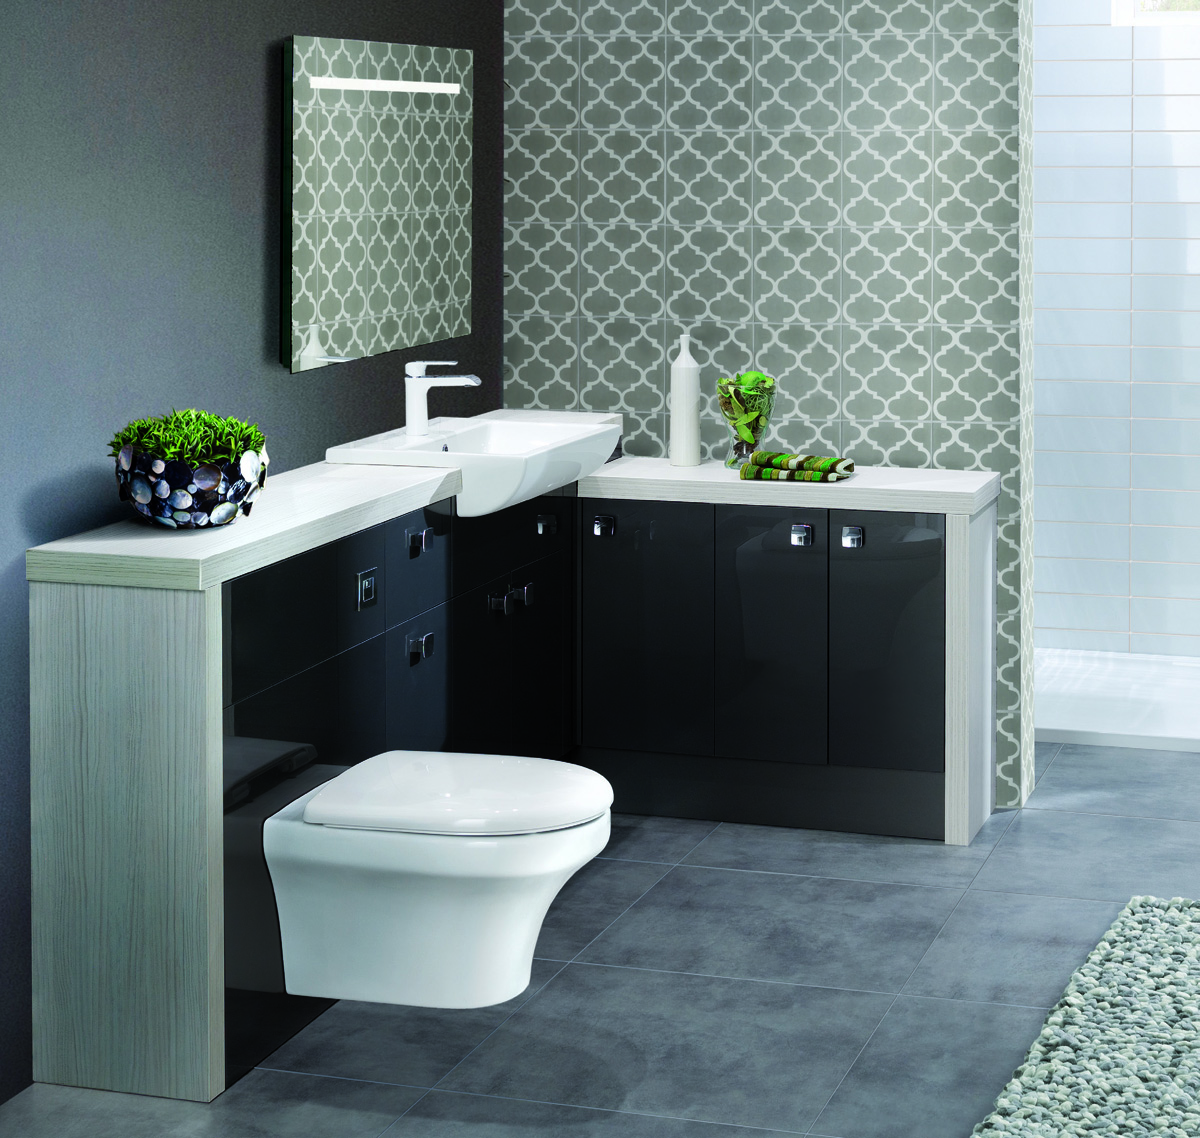 How Much To Have A Bathroom Fitted: High Quality Kitchen, Bathroom